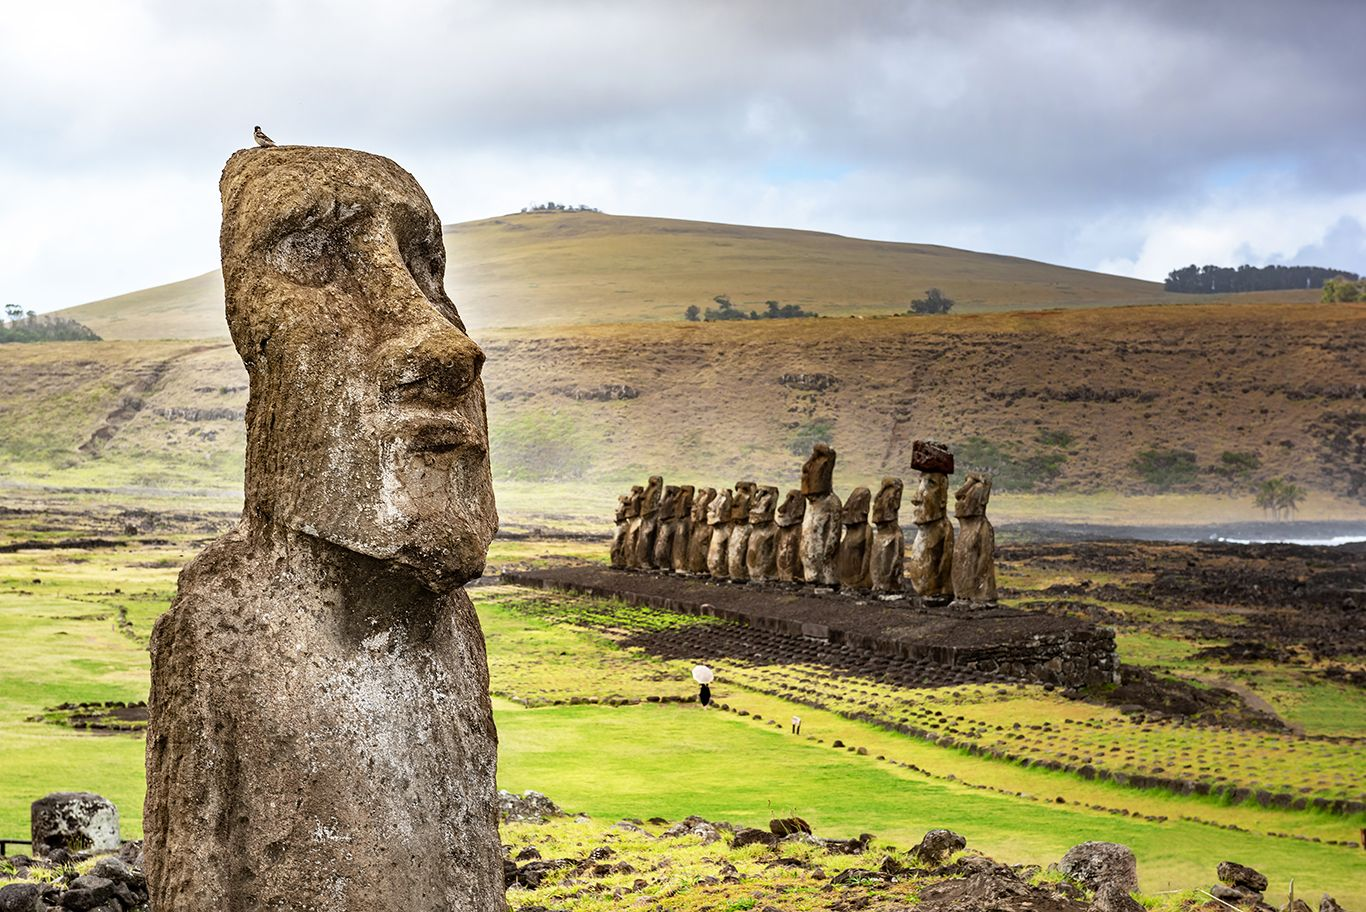 The Mata Ngarahu sector in the ceremonial village of Orongo in Rapa Nui National Park on Easter Island in Chile